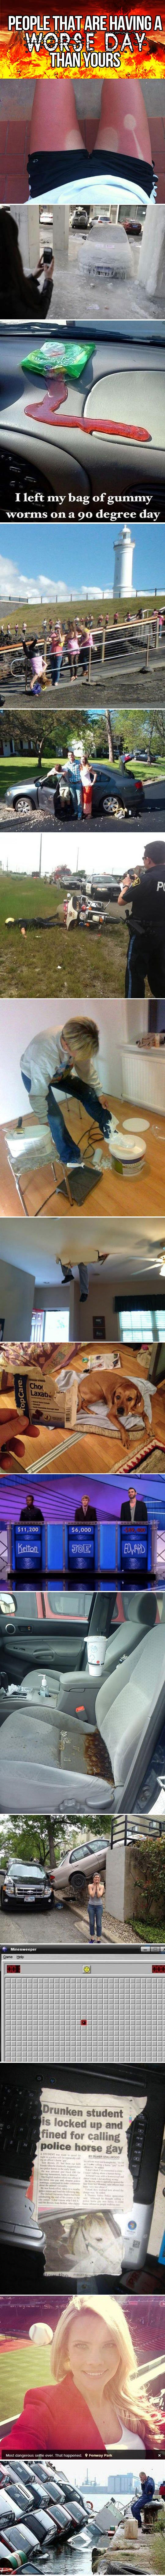 People that are having a worse day than yours\u2026 | People, Funny ...